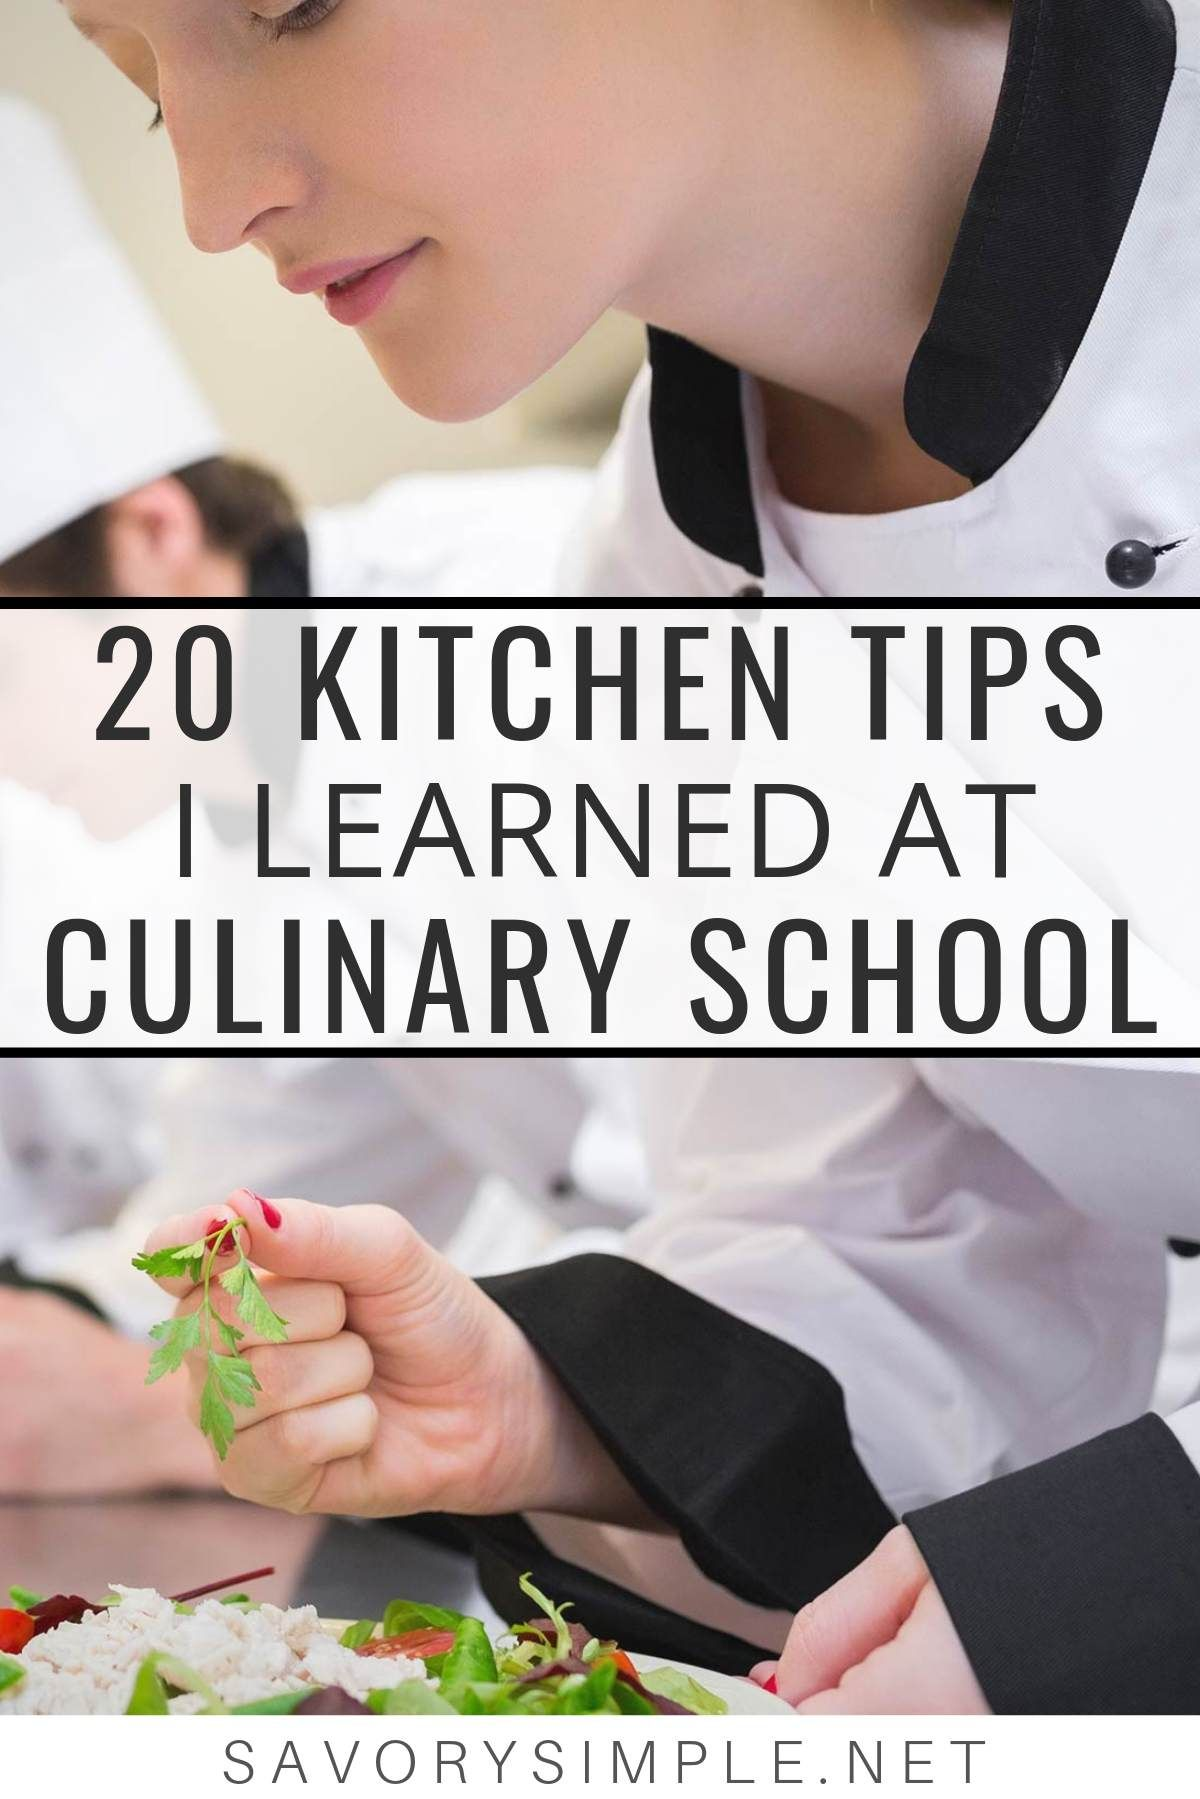 Photo of 20 Kitchen Tips I Learned at Culinary School